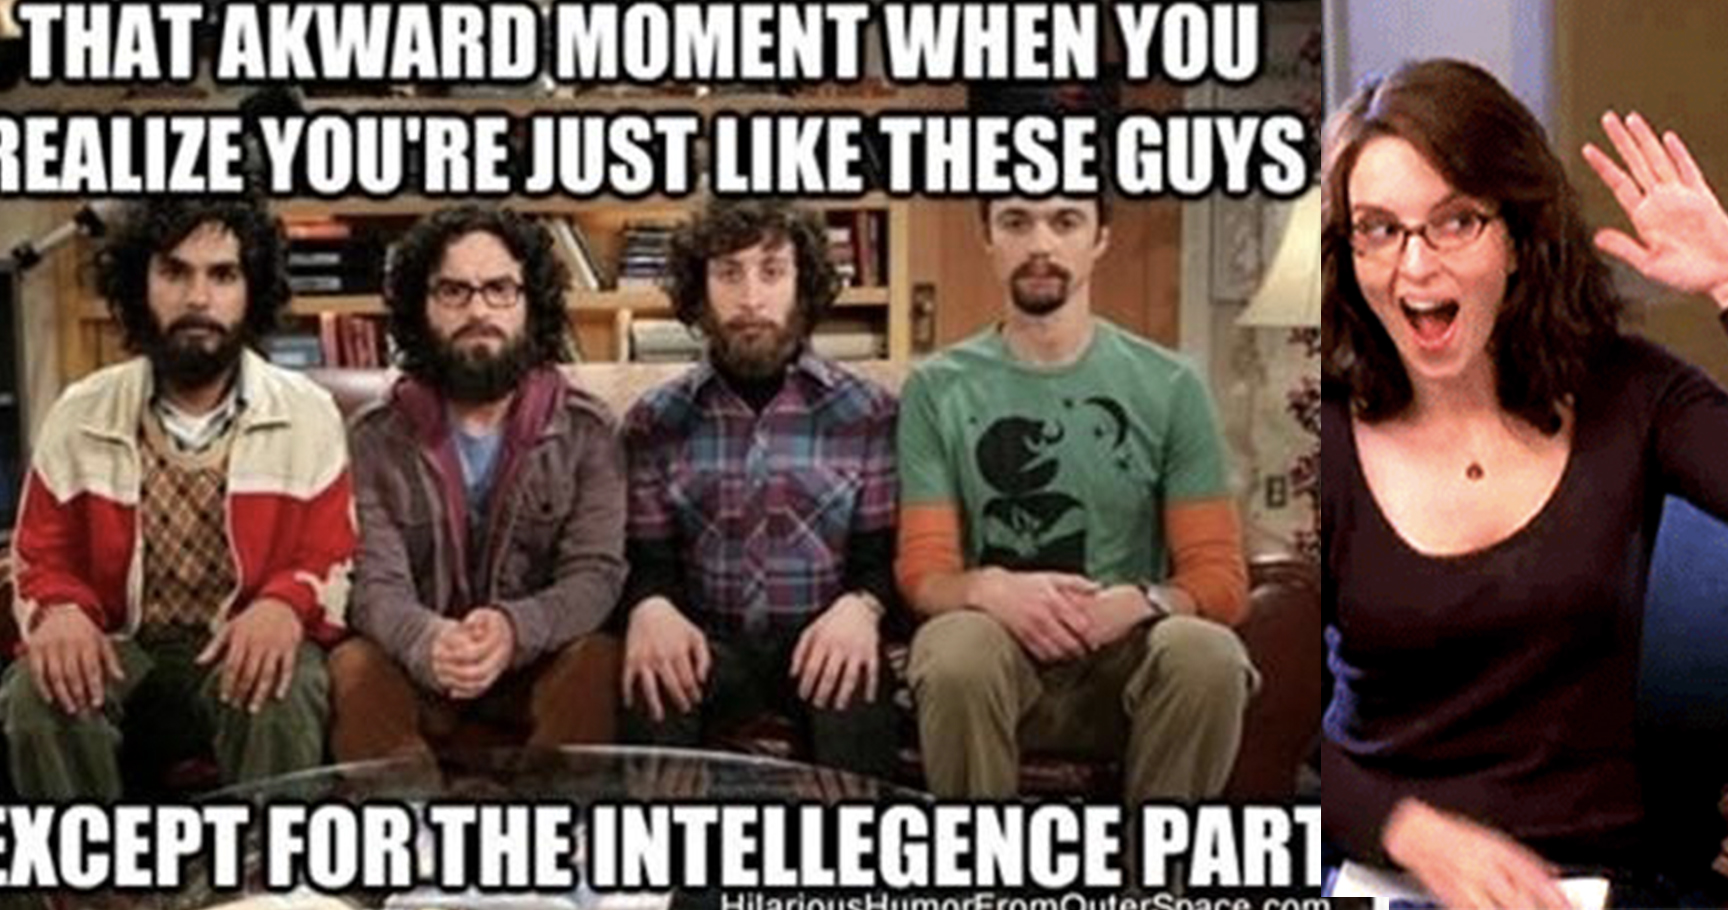 https://www.thethings.com/wp-content/uploads/2017/05/big-bang-theory-memes-feature.jpg